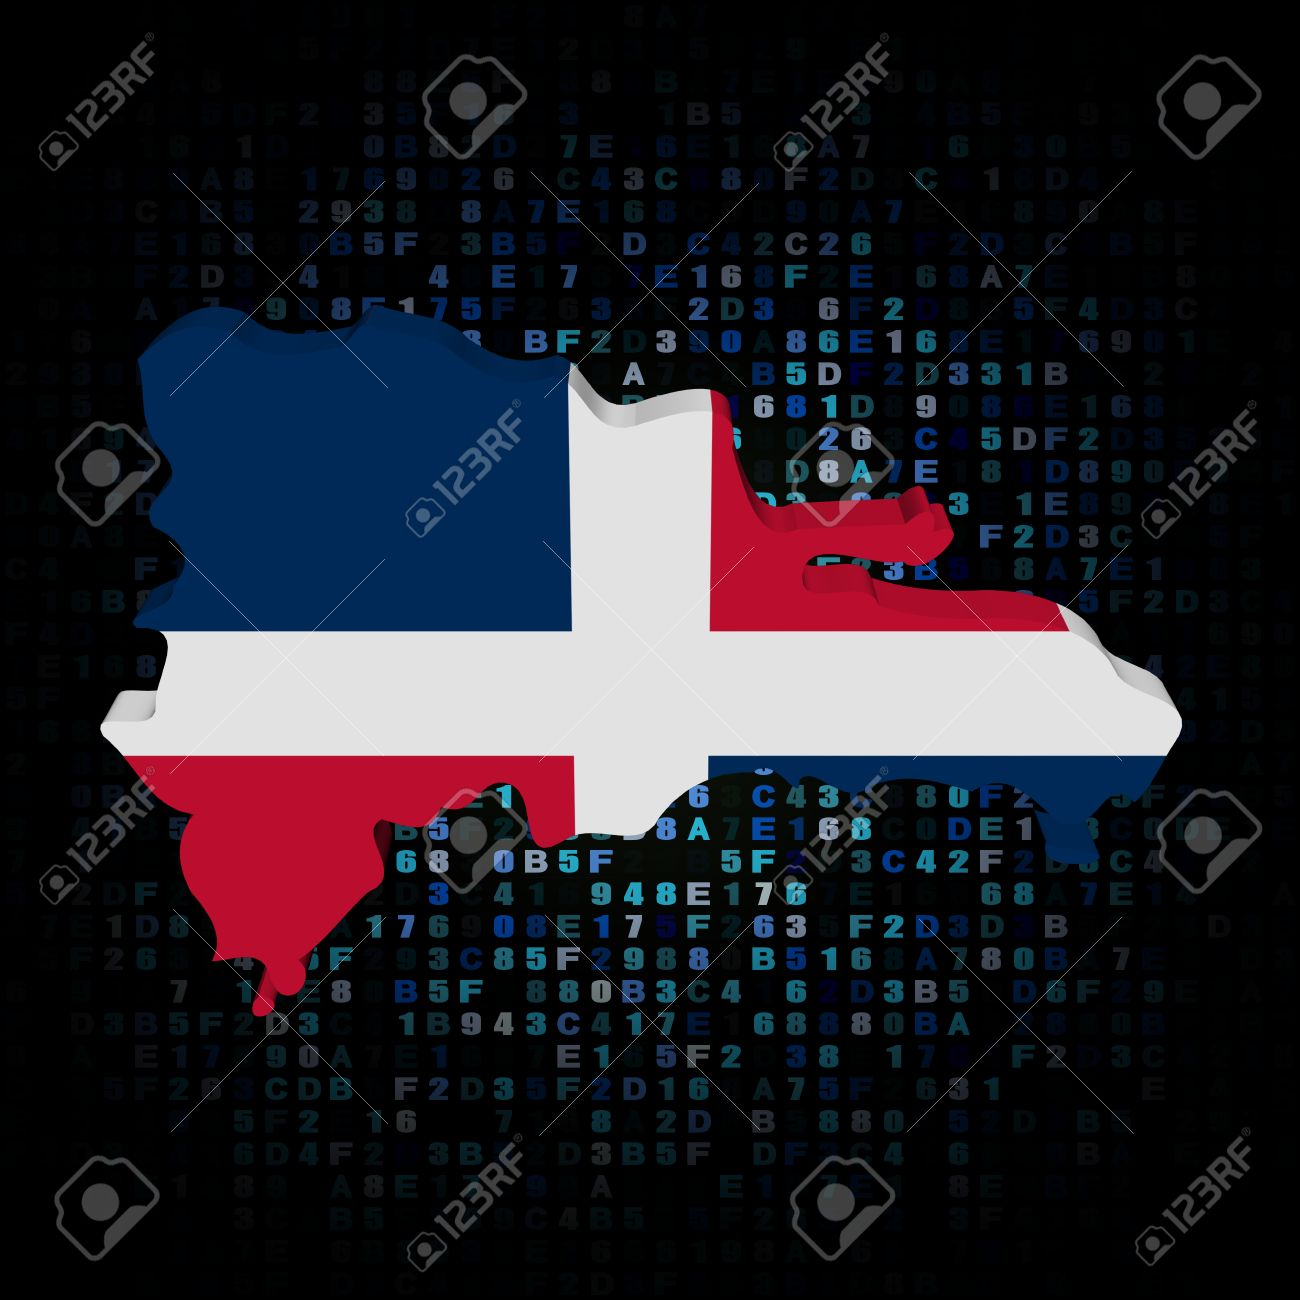 Dominican republic map flag on hex code illustration stock photo dominican republic map flag on hex code illustration stock illustration 66568196 gumiabroncs Image collections